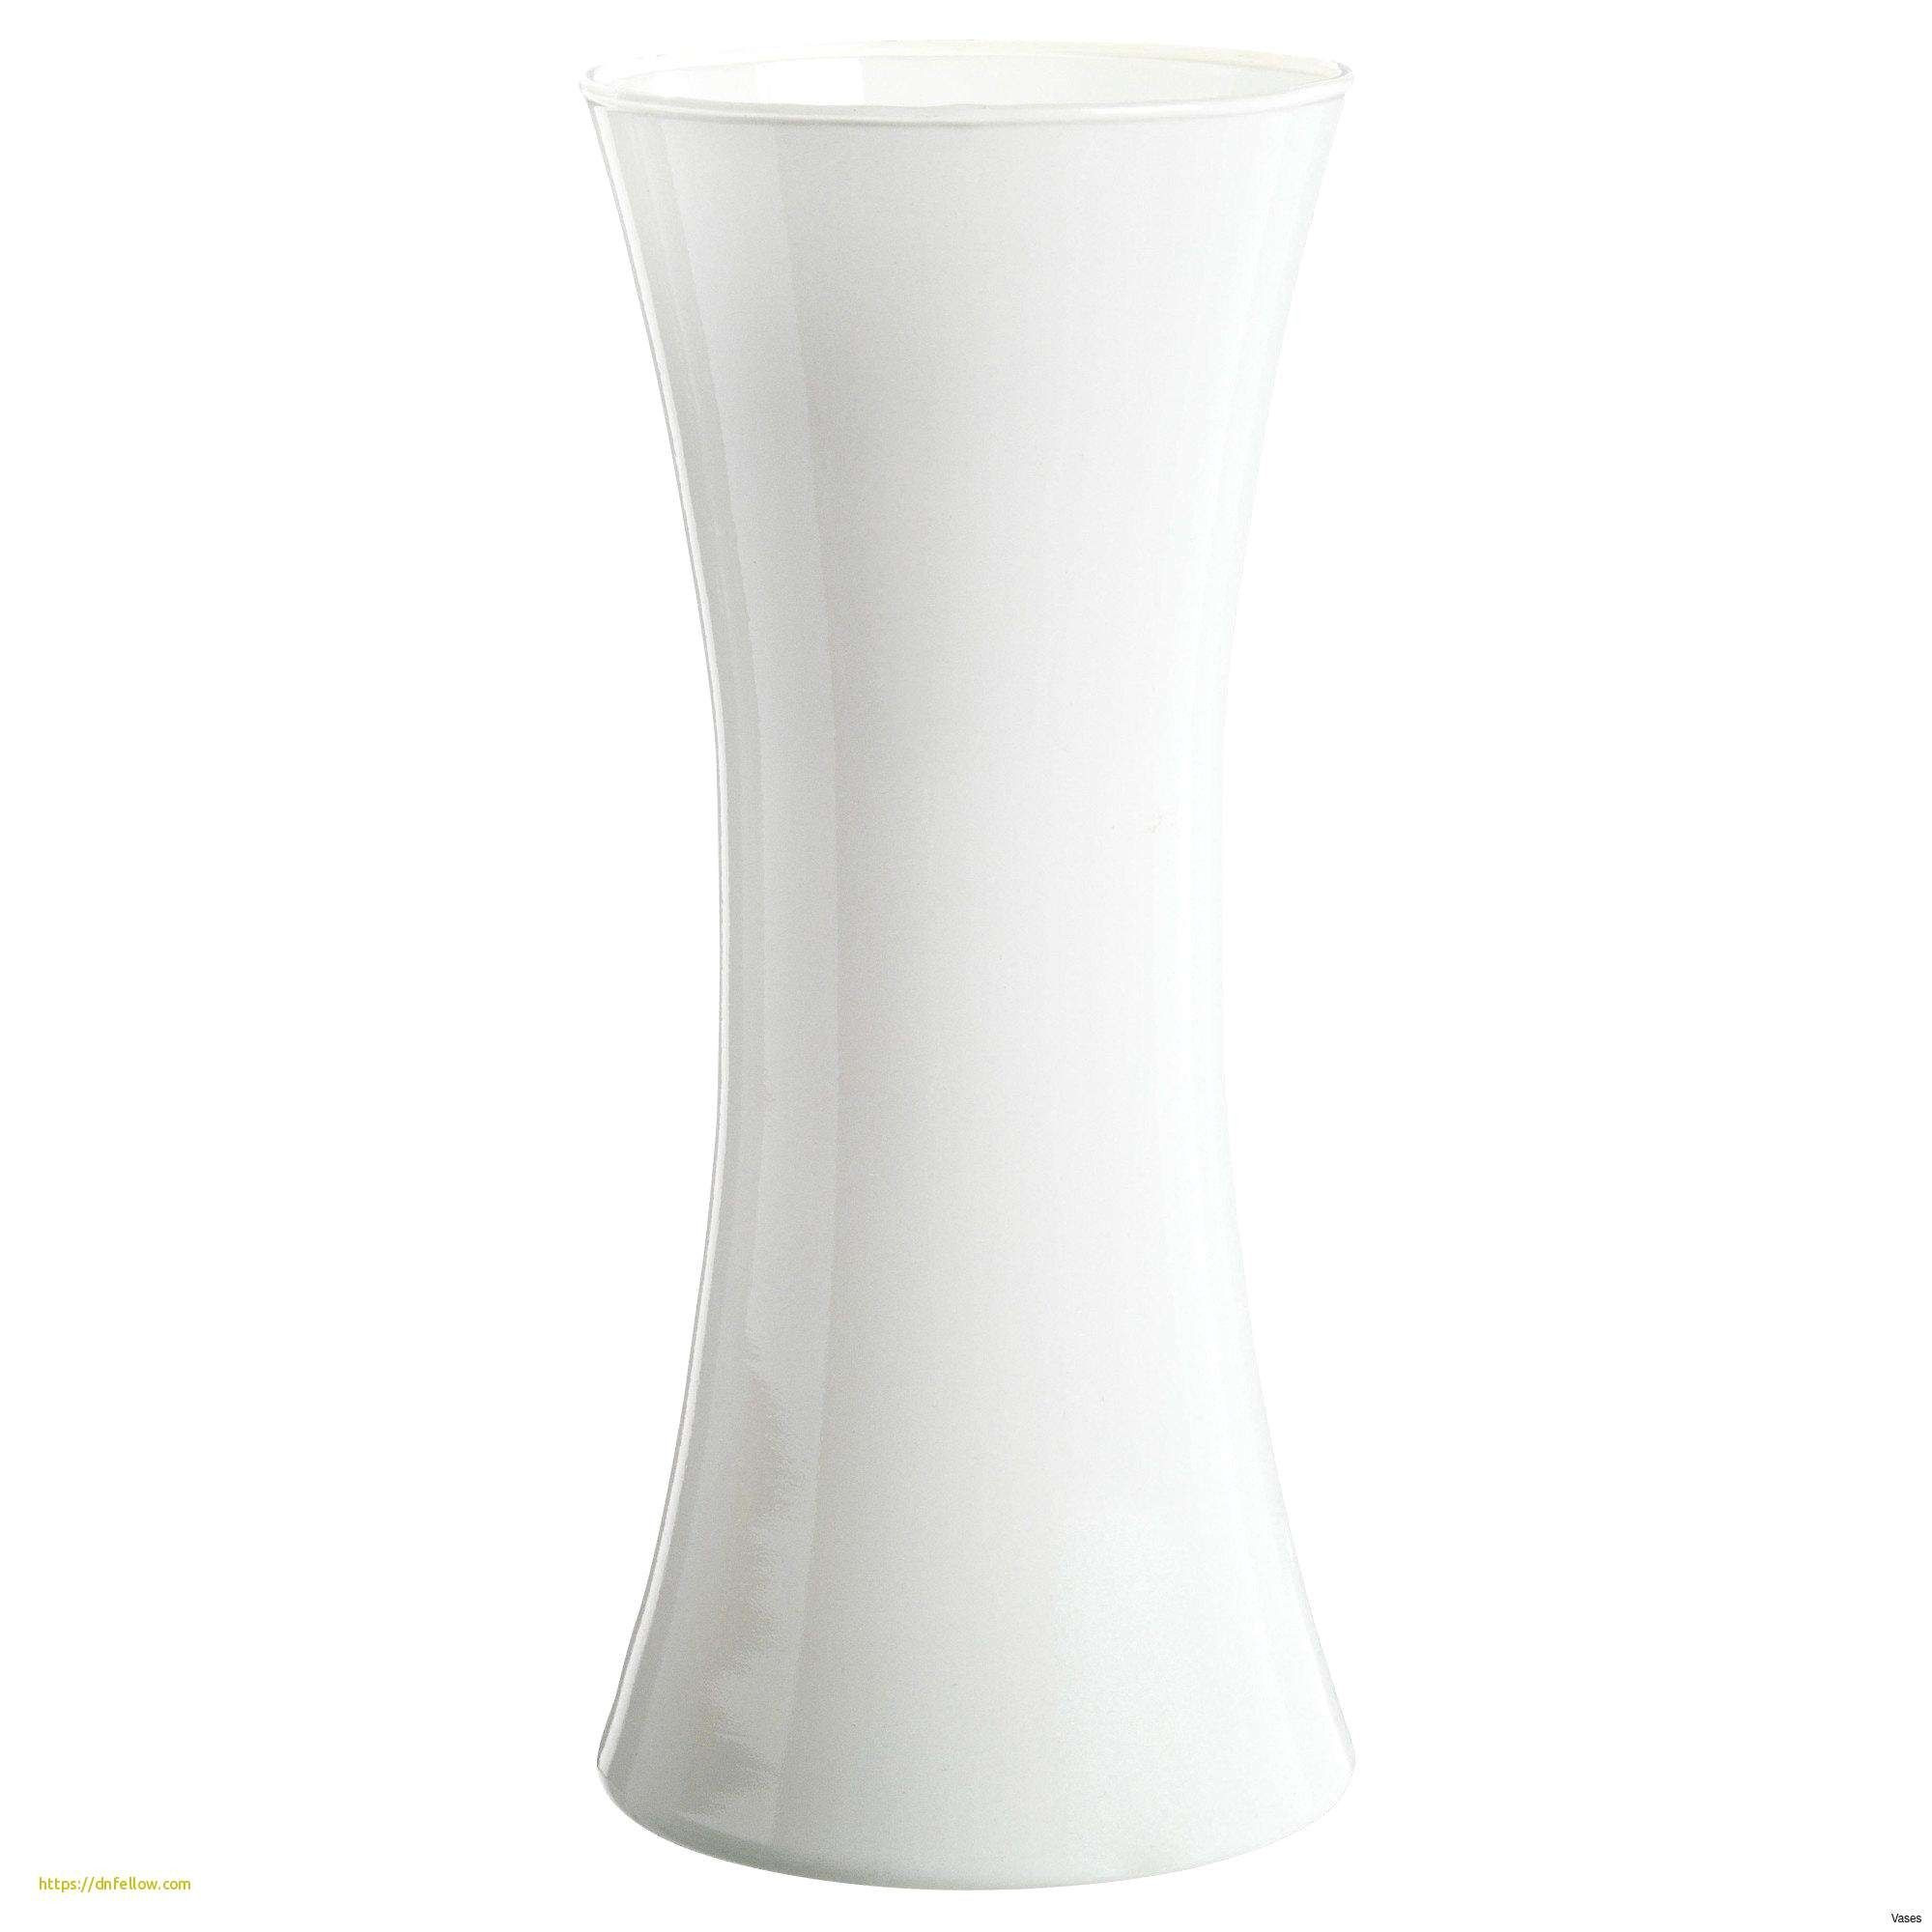 40 inch tall vases of white vase set new white floor vase ceramic modern 40 inchl home in white vase set new white floor vase ceramic modern 40 inchl home design ikea inch